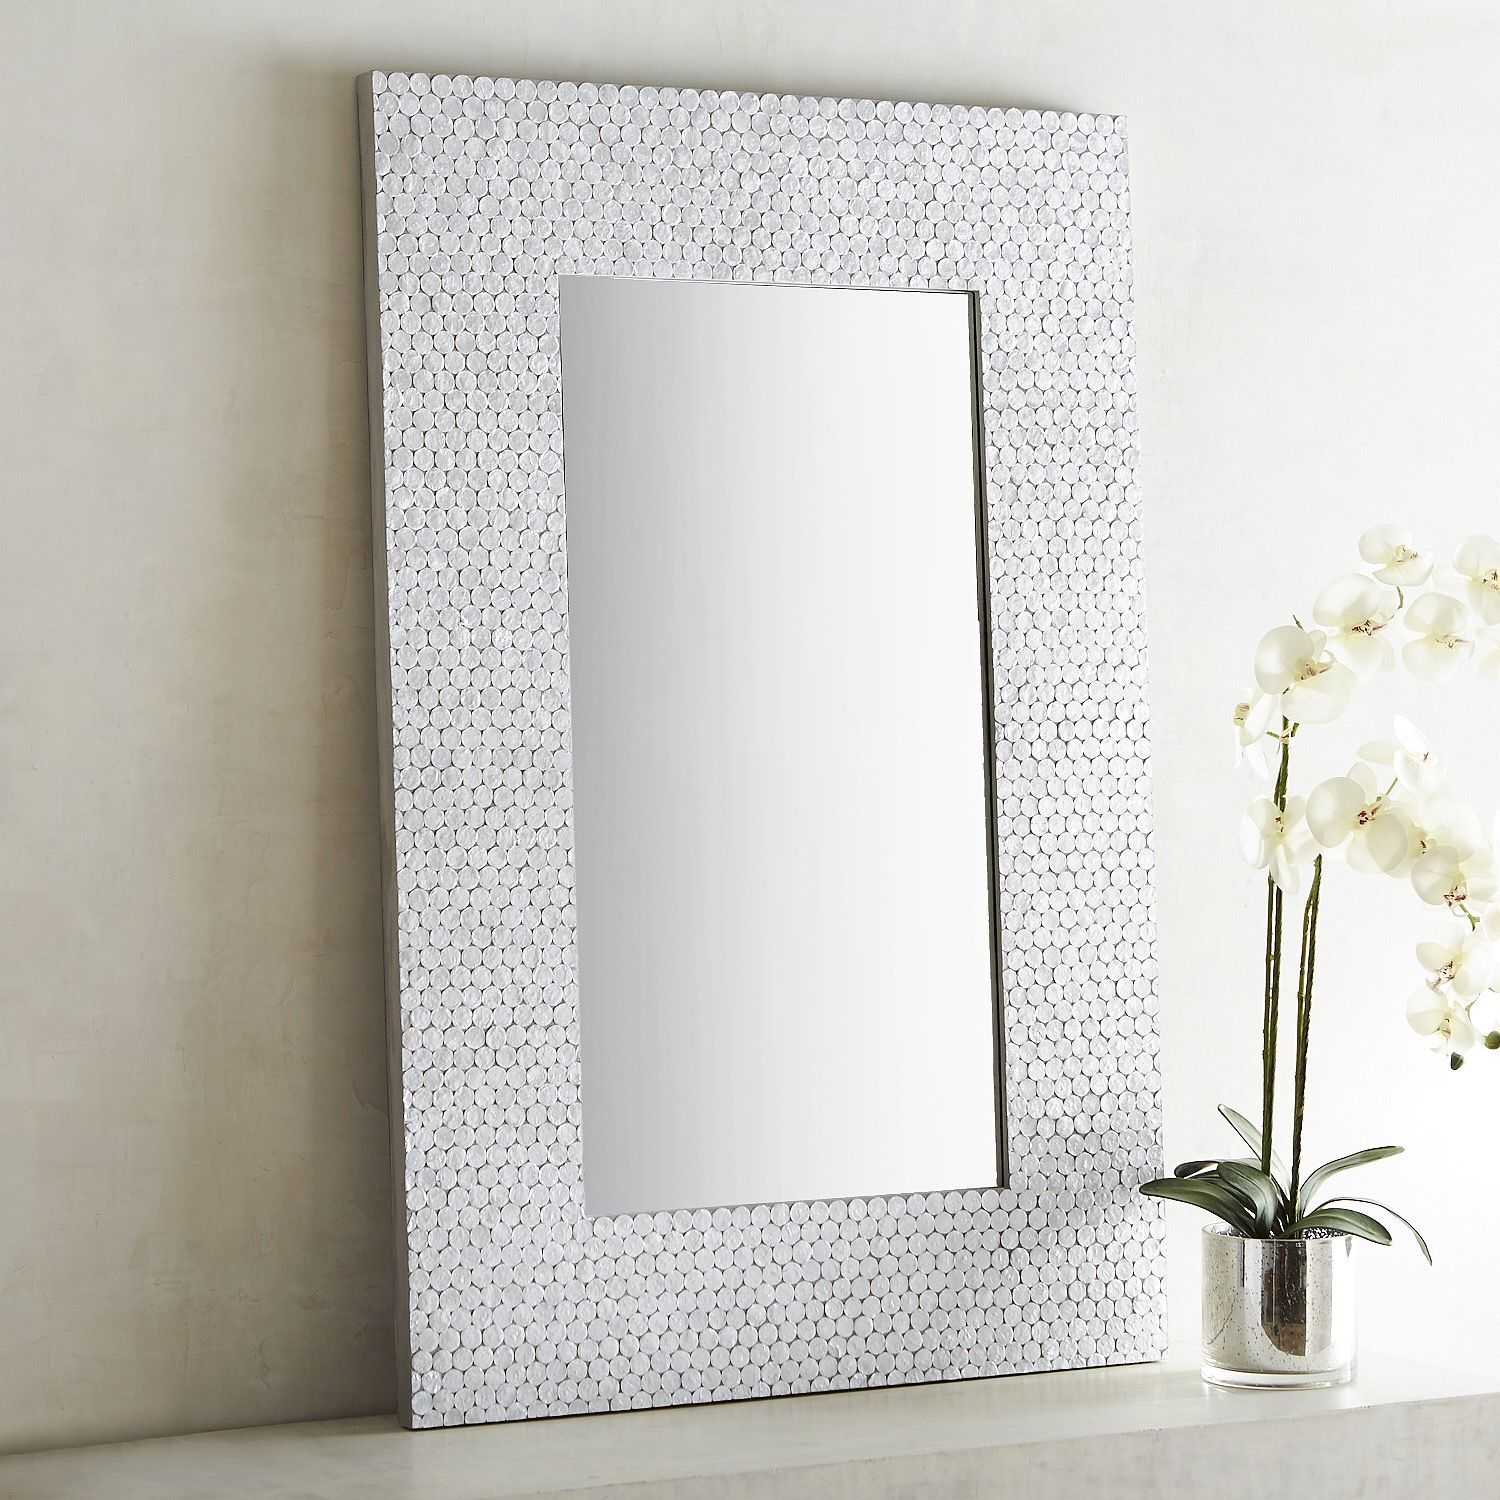 32 X 48 Mirror Part - 43: Shimmer White Capiz 32x48 Mirror